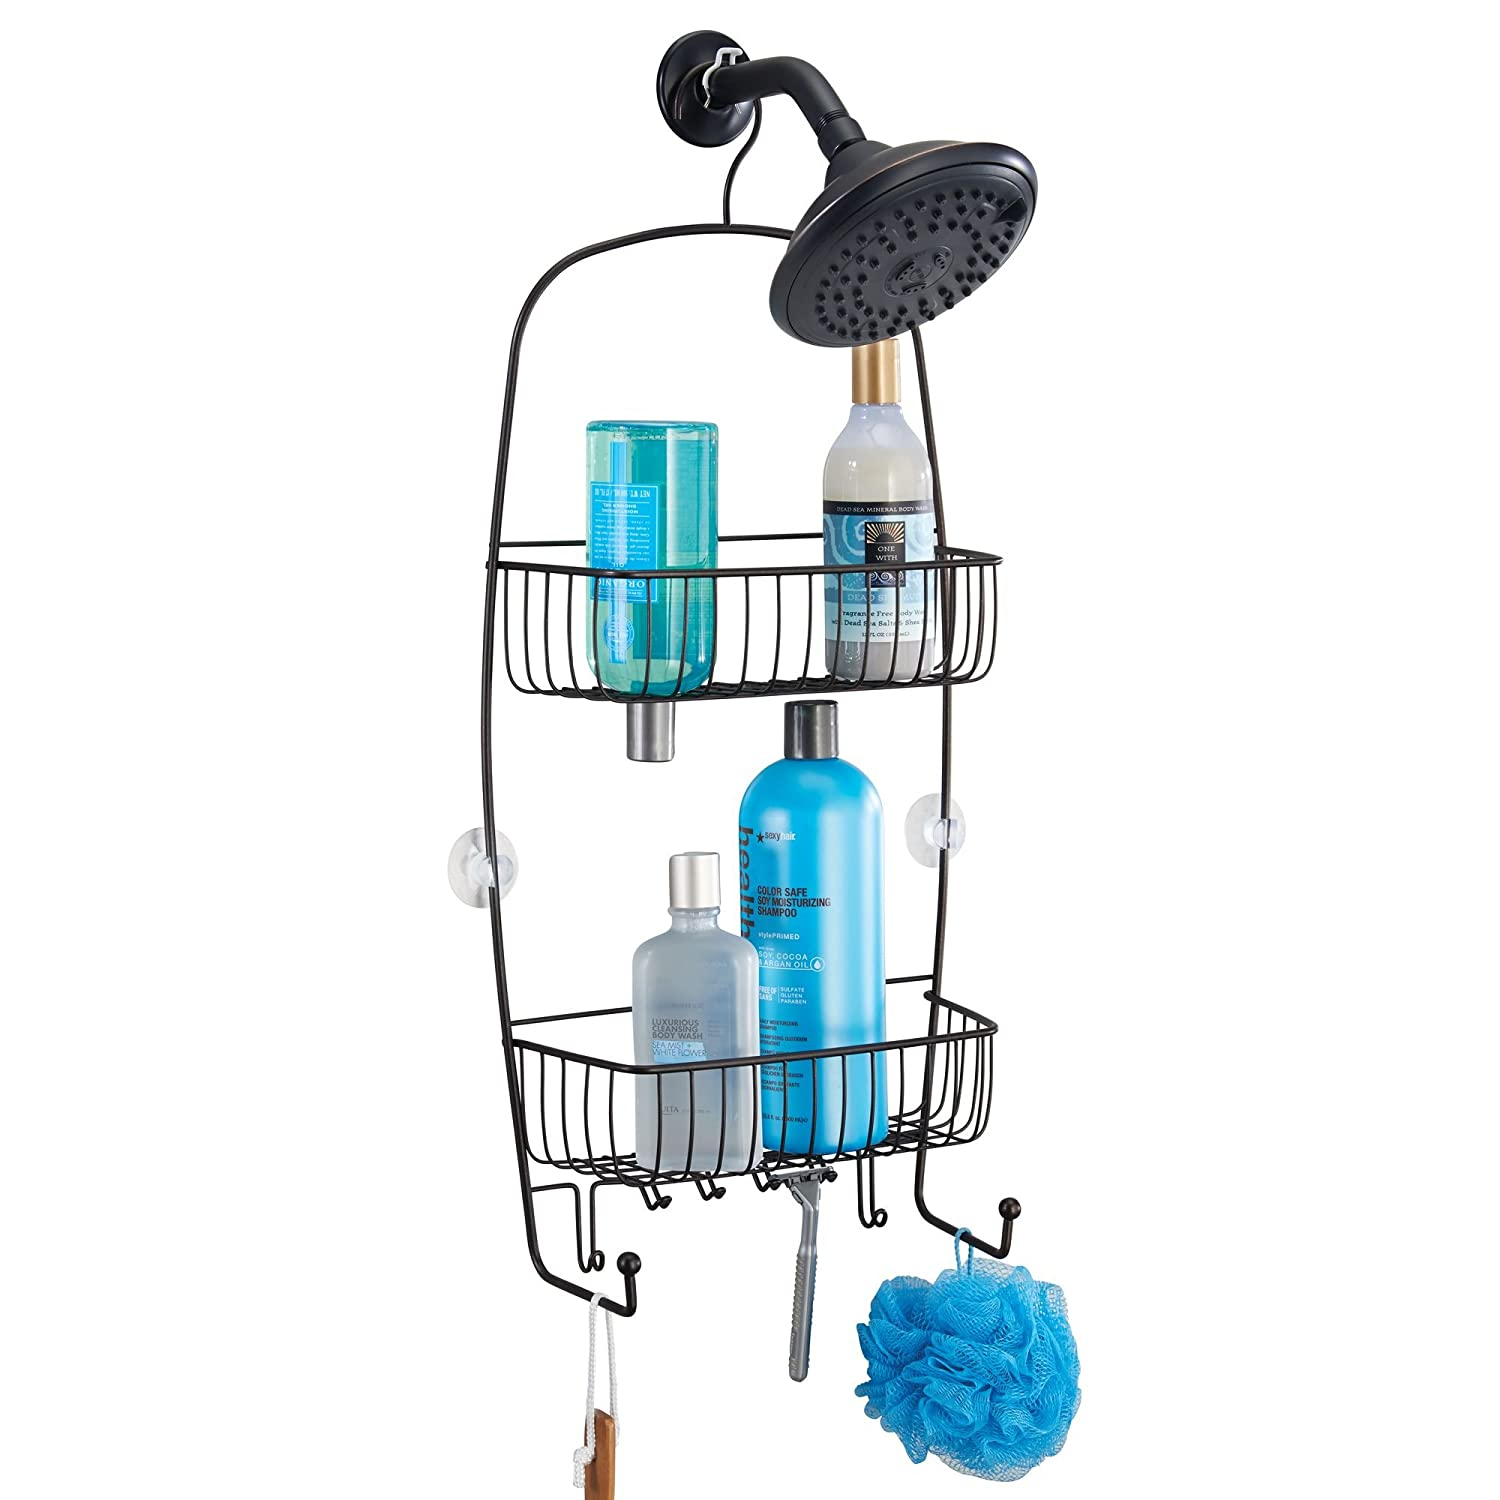 Amazon.com: mDesign Extra-Large Hanging Shower Caddy Organizer with ...